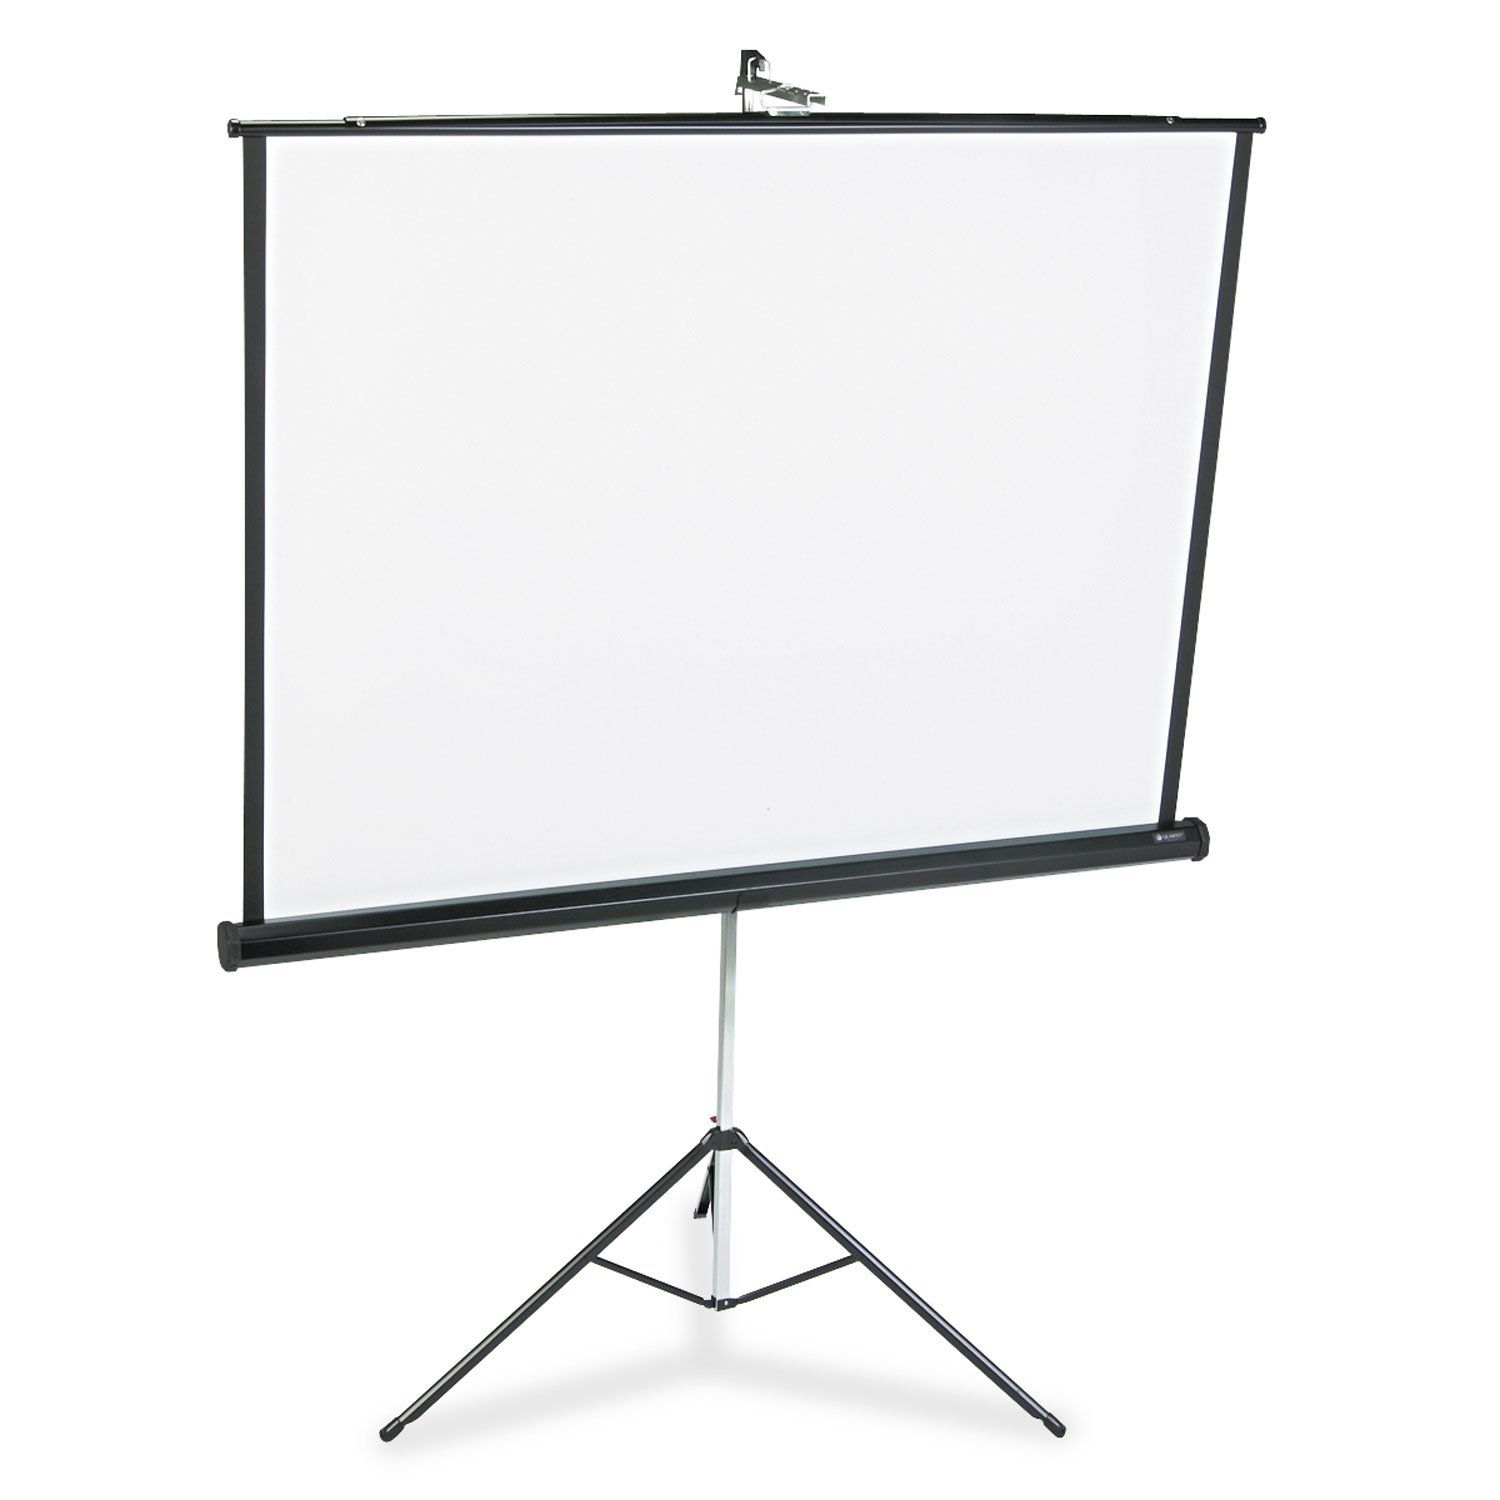 Quartet Portable Tripod Projection Screen 60 X 60 Inches High Resolution Matte Surface 560s Projection Screen Projection Screens Projector Screen